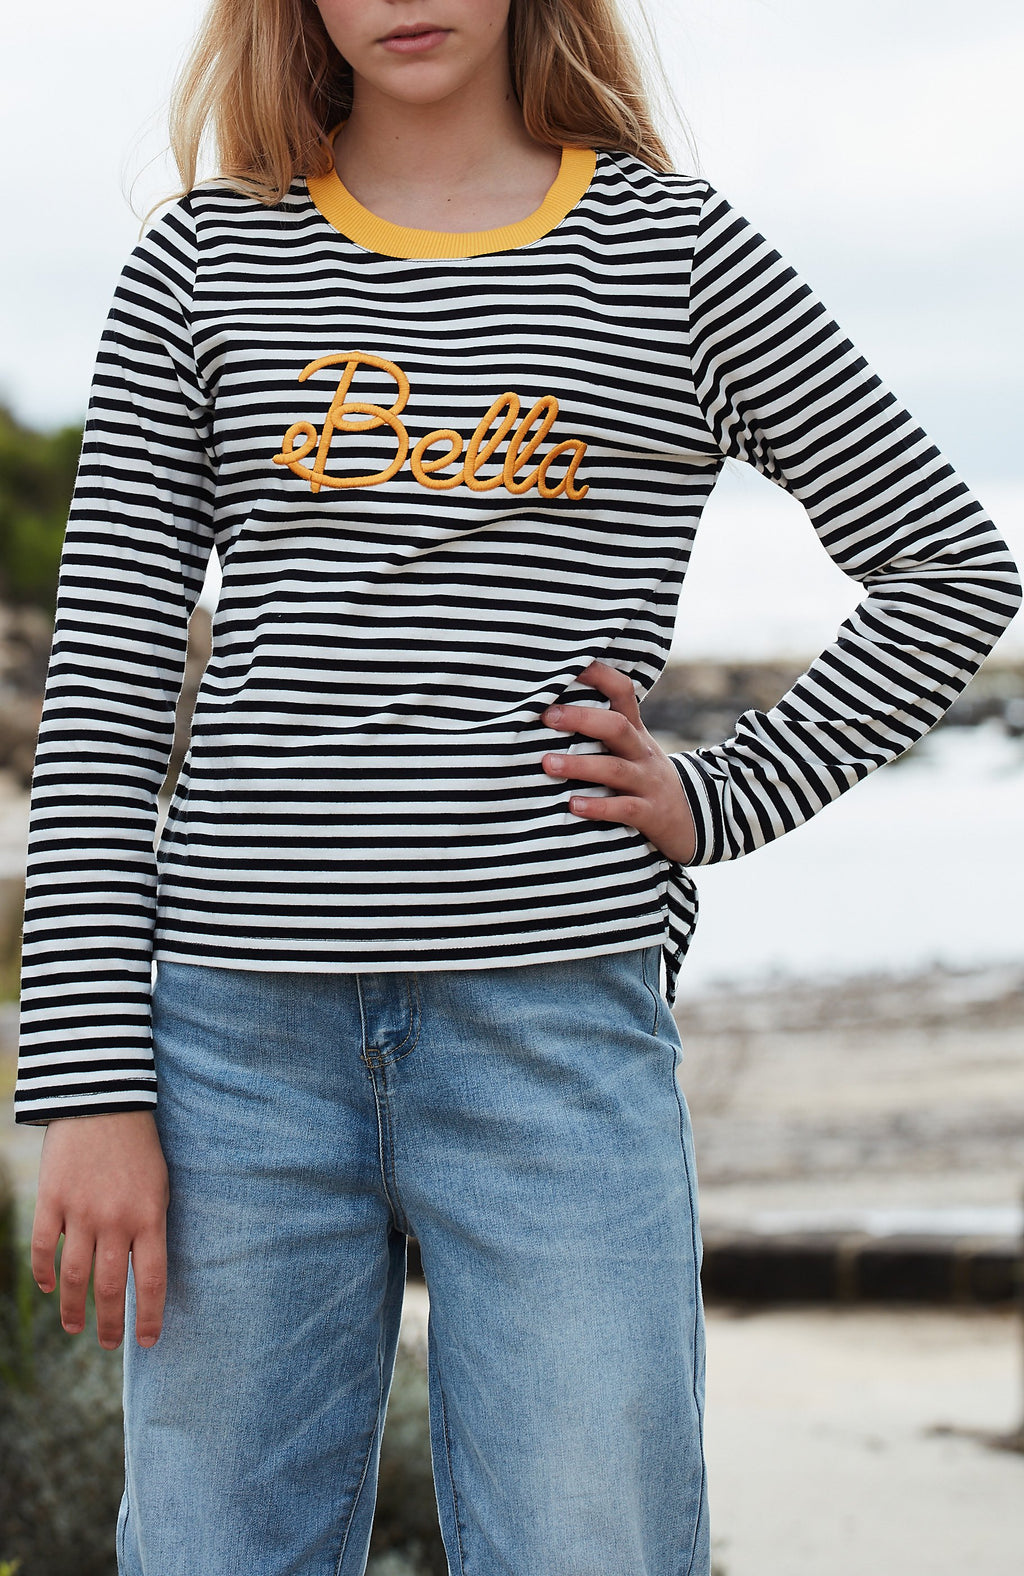 bella black and white striped slogan girls tee